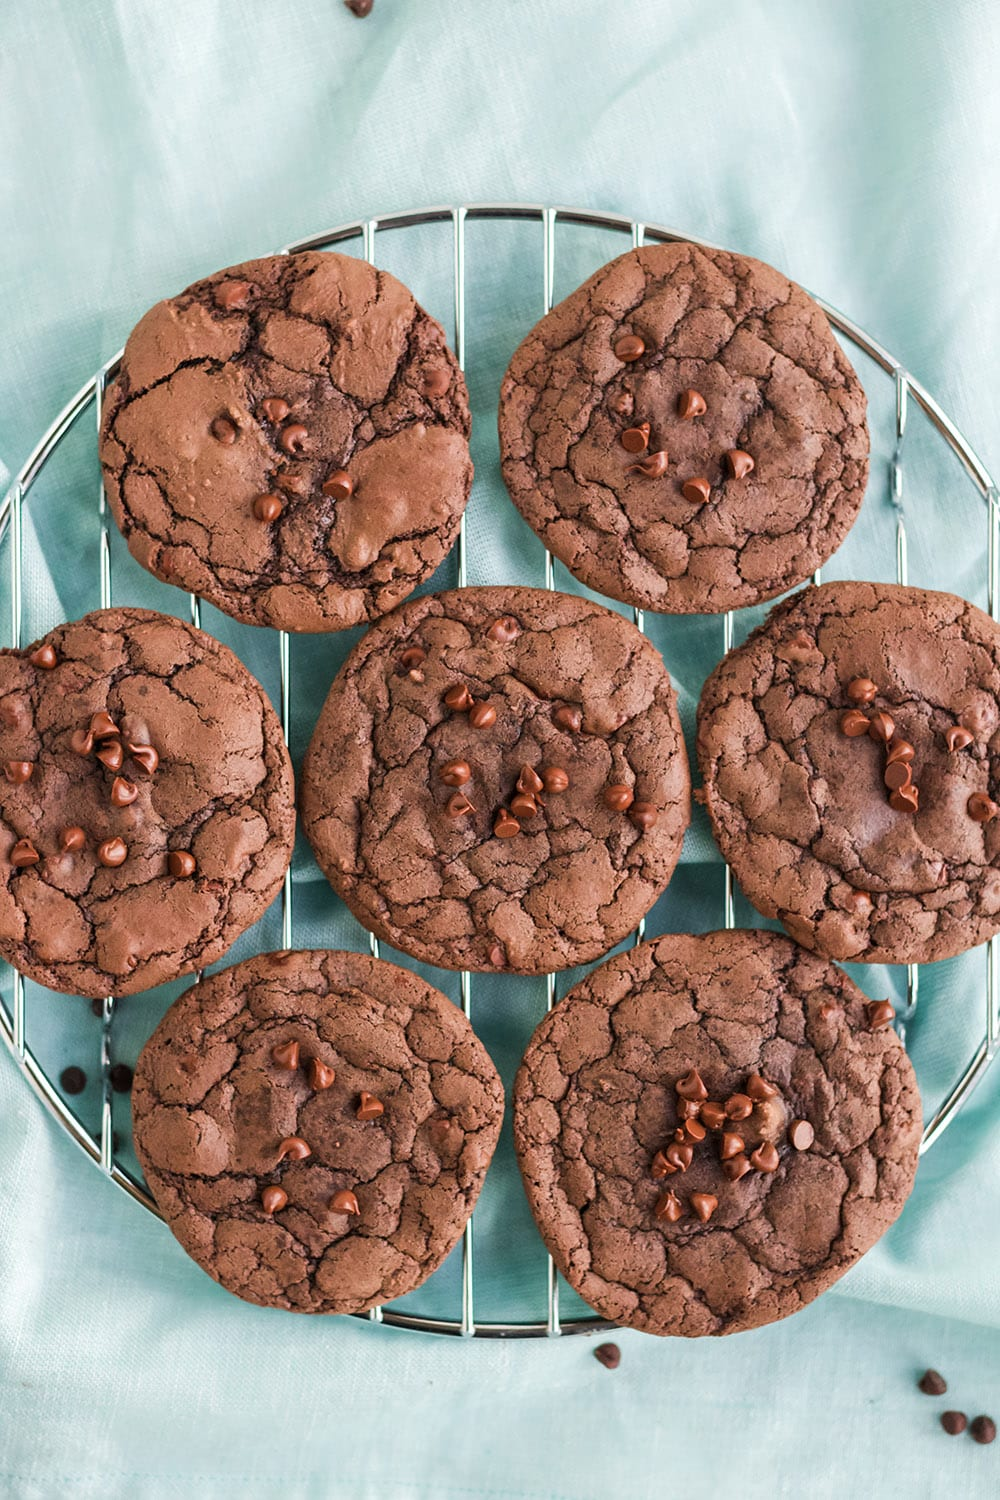 Brownie mix cookies on a rack on a blue towel.